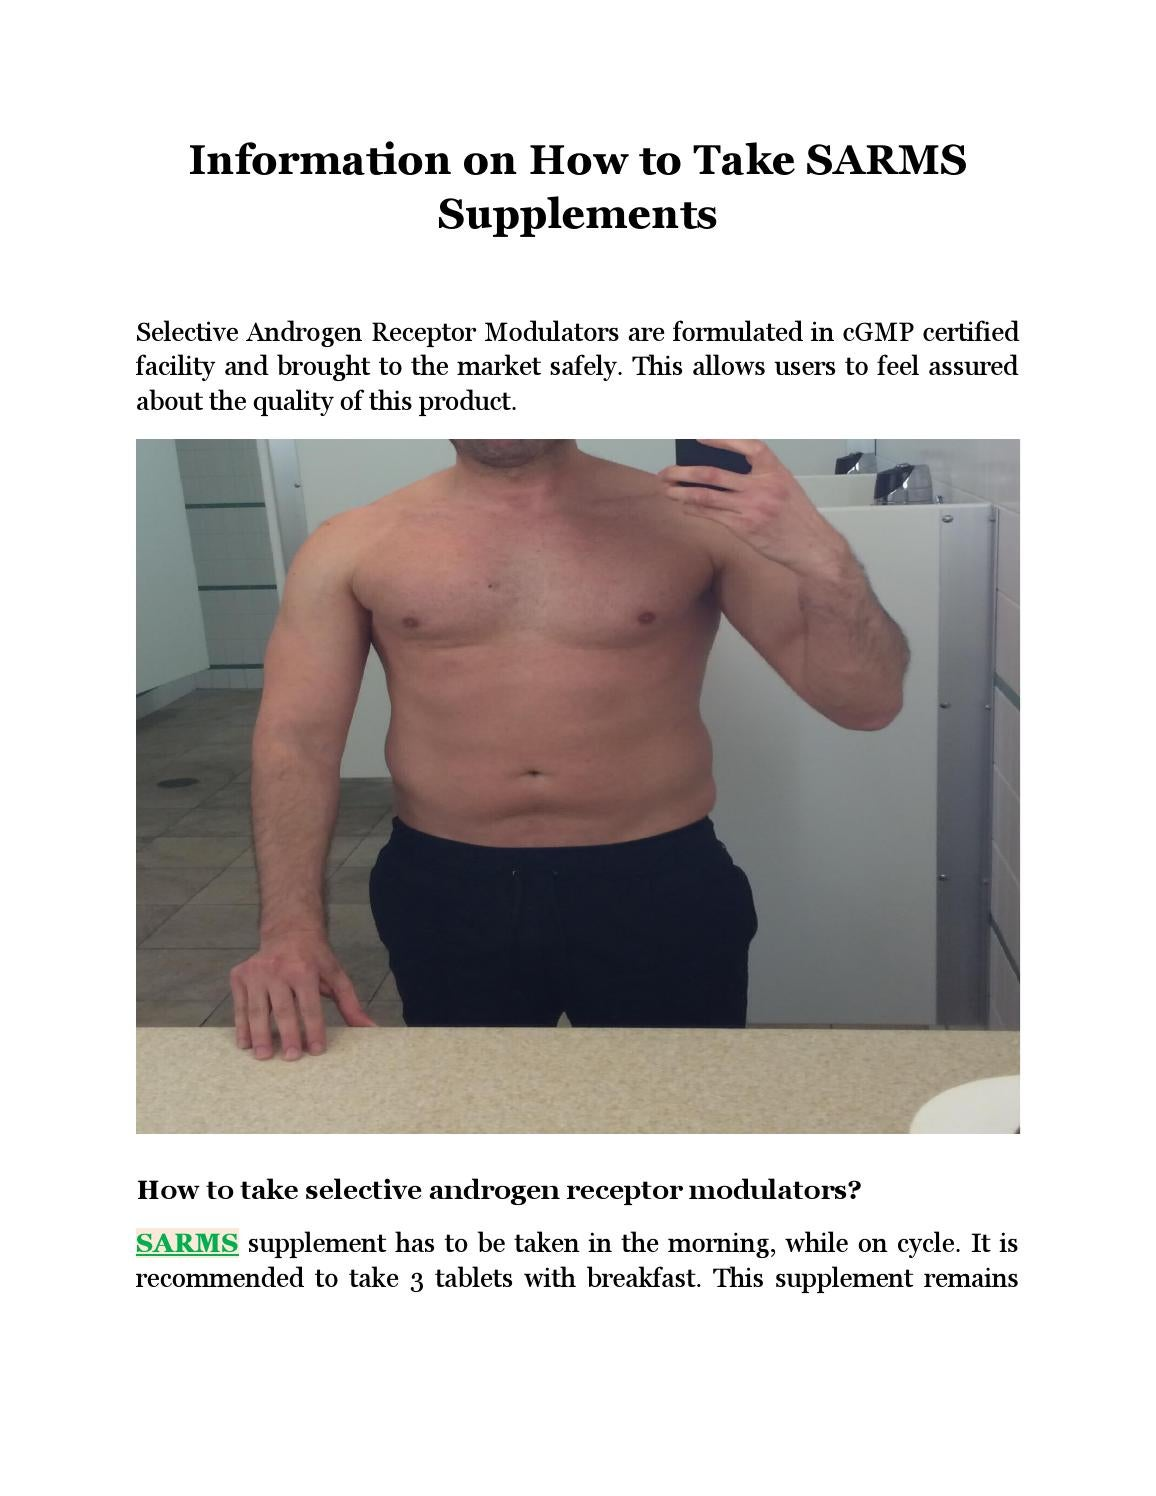 Information On How To Take Sarms Supplements By Kristopheree